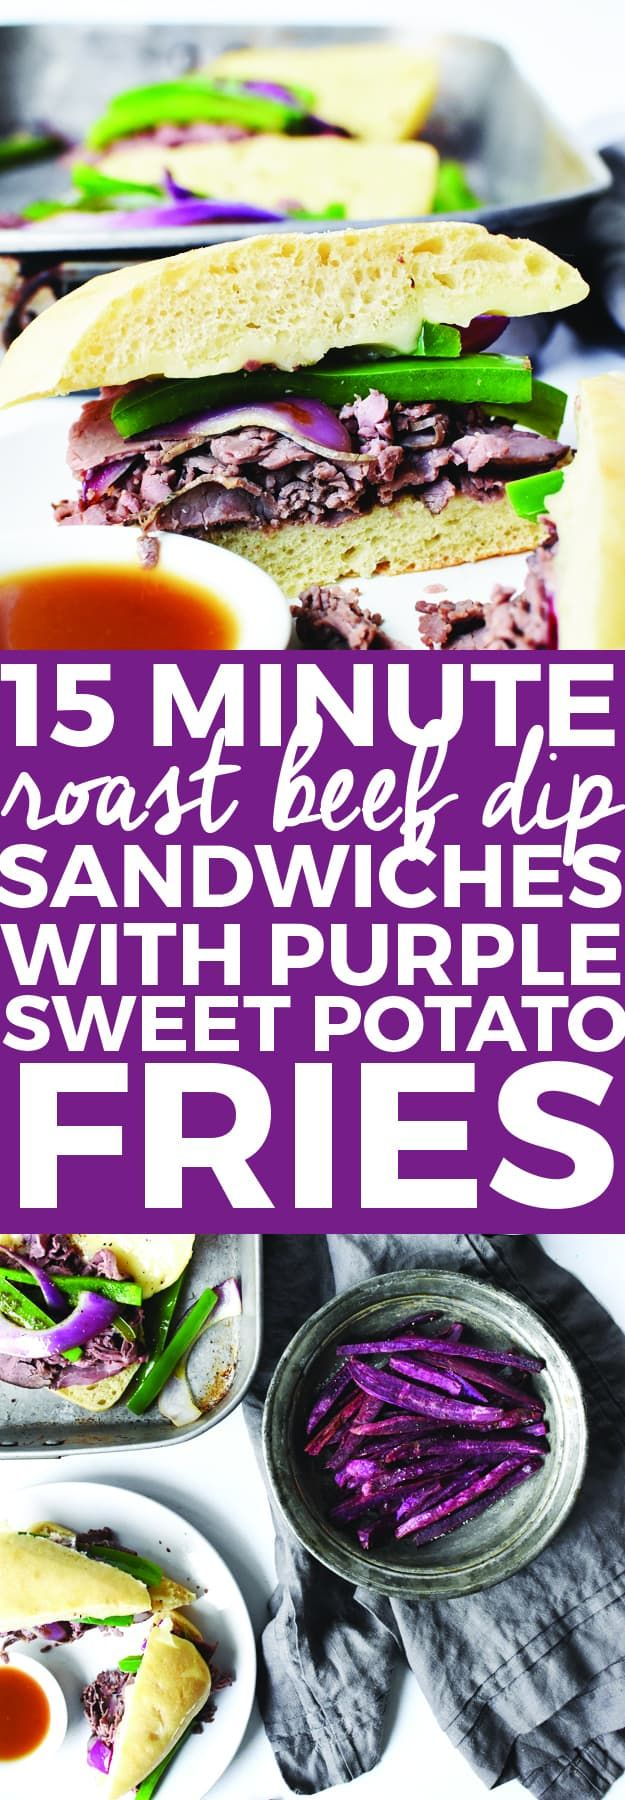 15-Minute Roast Beef Dip Sandwiches with Purple Sweet Potato Fries   beef recipe ideas, quick dinner recipes, easy sandwich recipes, homemade beef dip recipe, easy dinner recipes, purple potato recipes, how to cook purple potatoes    The Butter Half #roastbeef #sandwichrecipes #easydinner #purplepotatoes